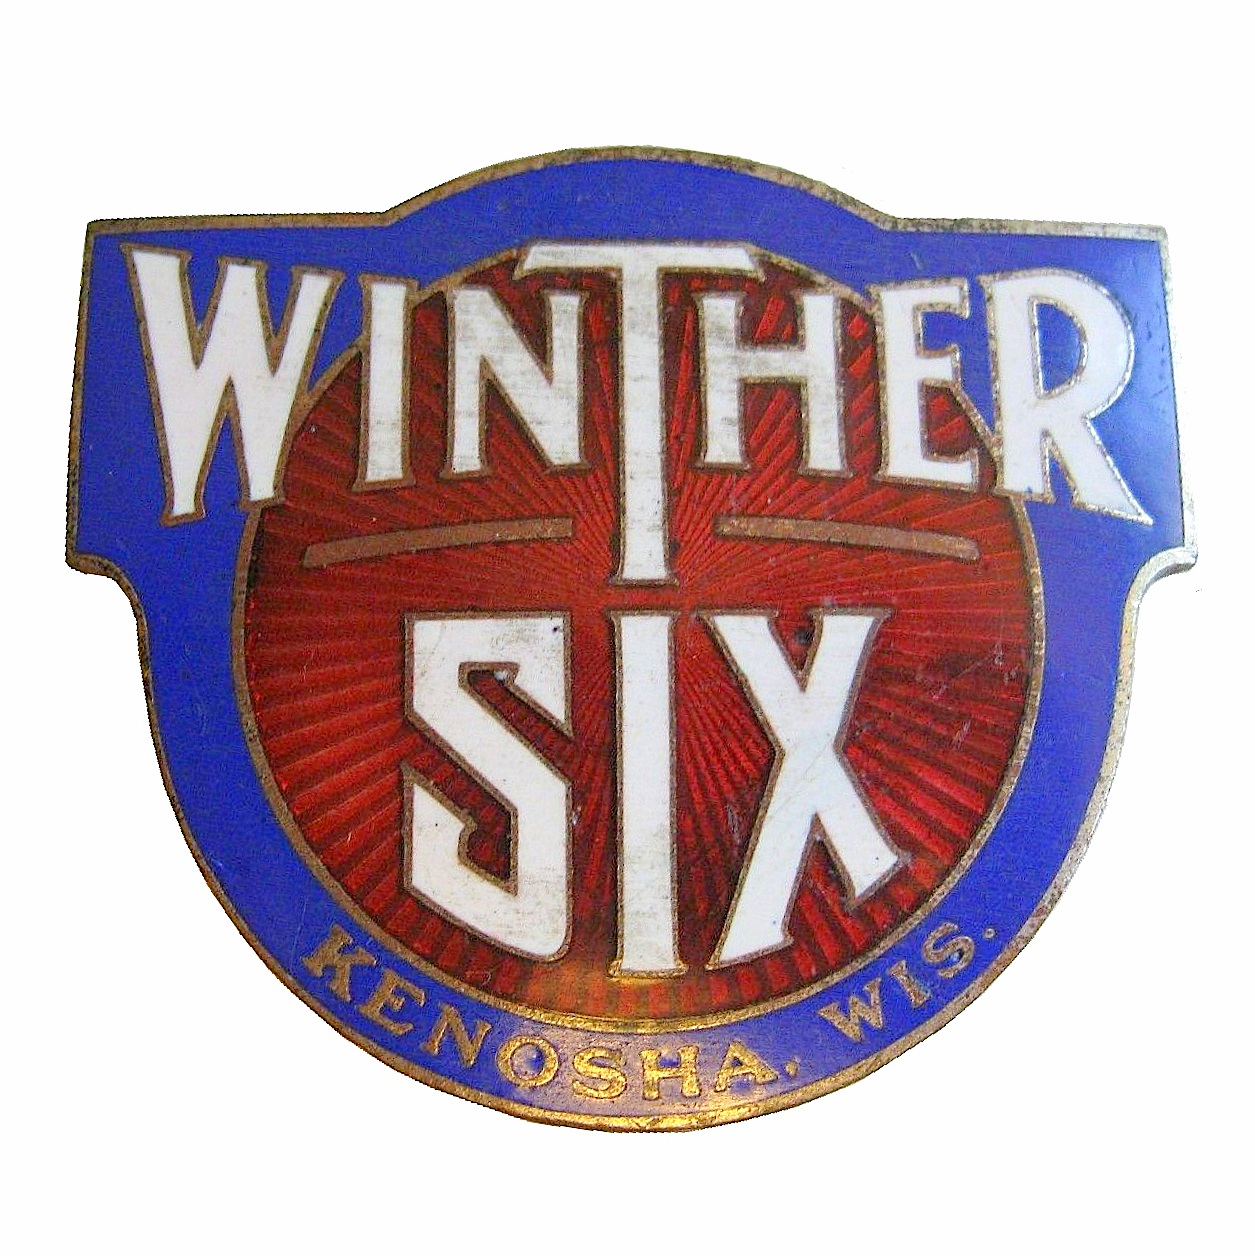 Winther Six